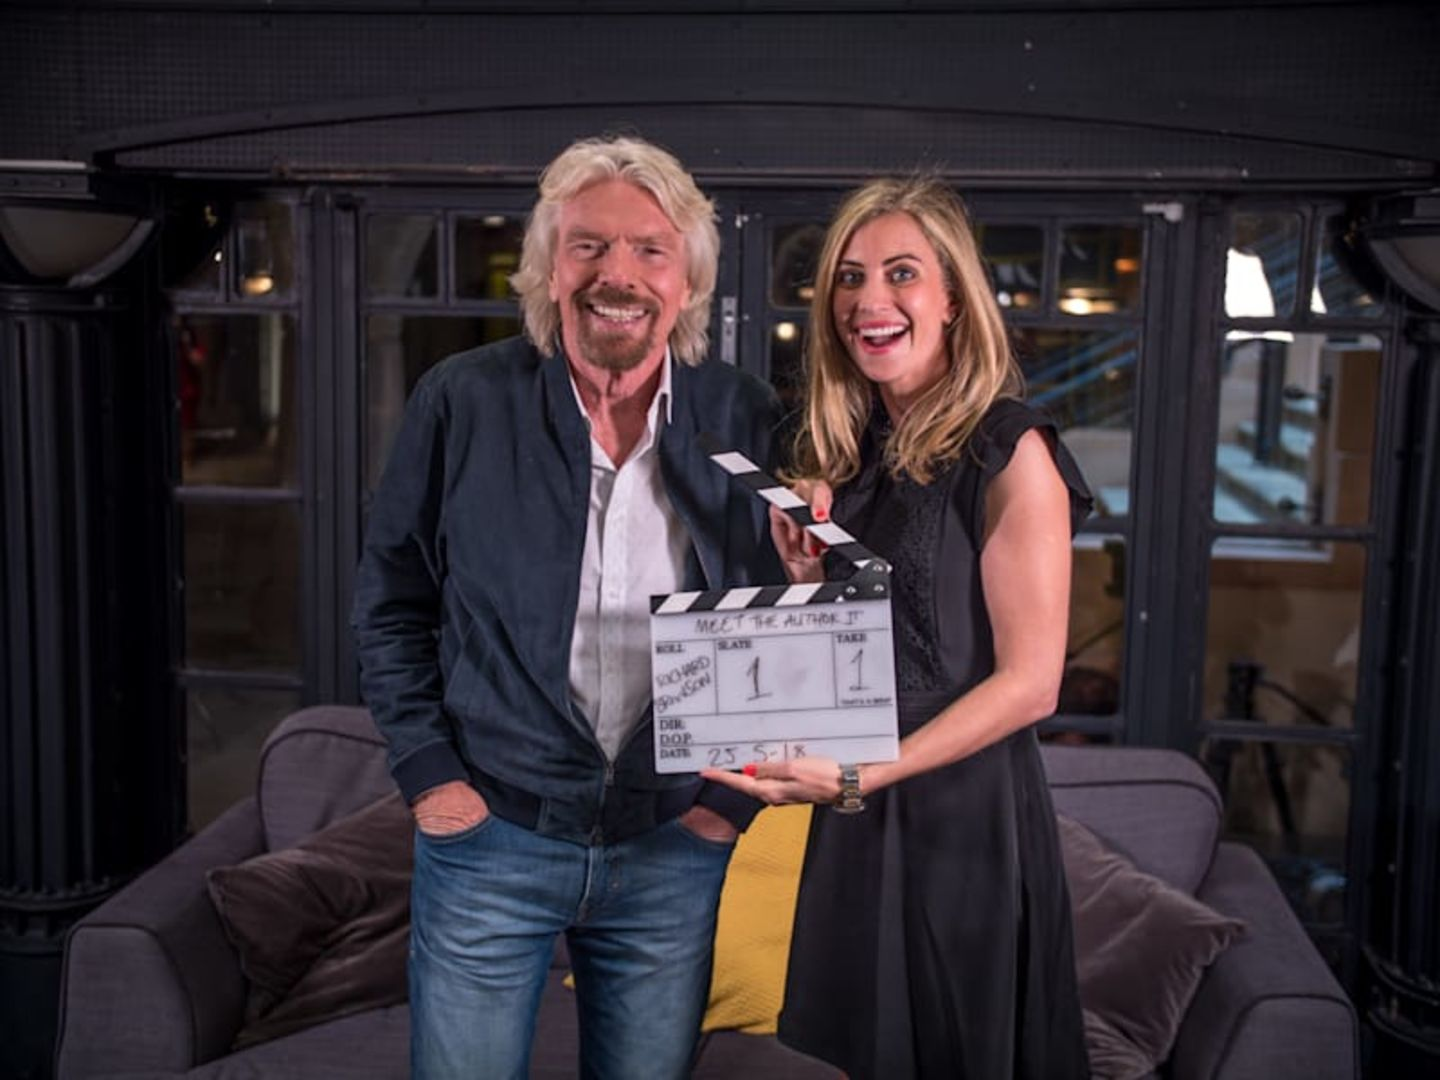 Richard and Holly Branson smiling together